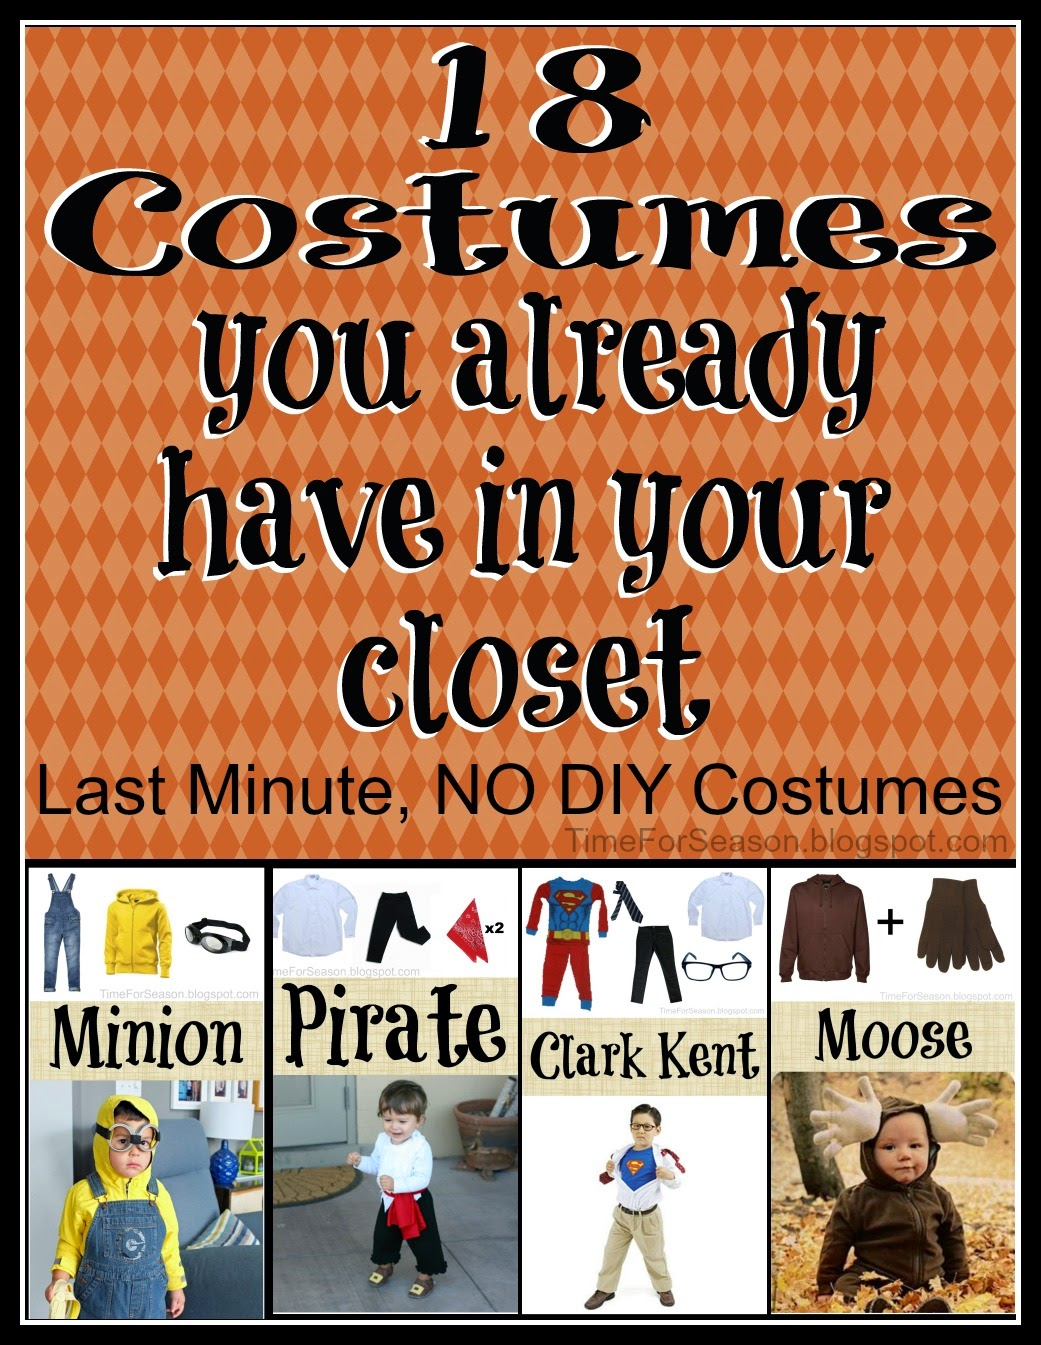 http://timeforseason.blogspot.com/2014/10/18-last-minute-no-diy-kid-costume-ideas.html